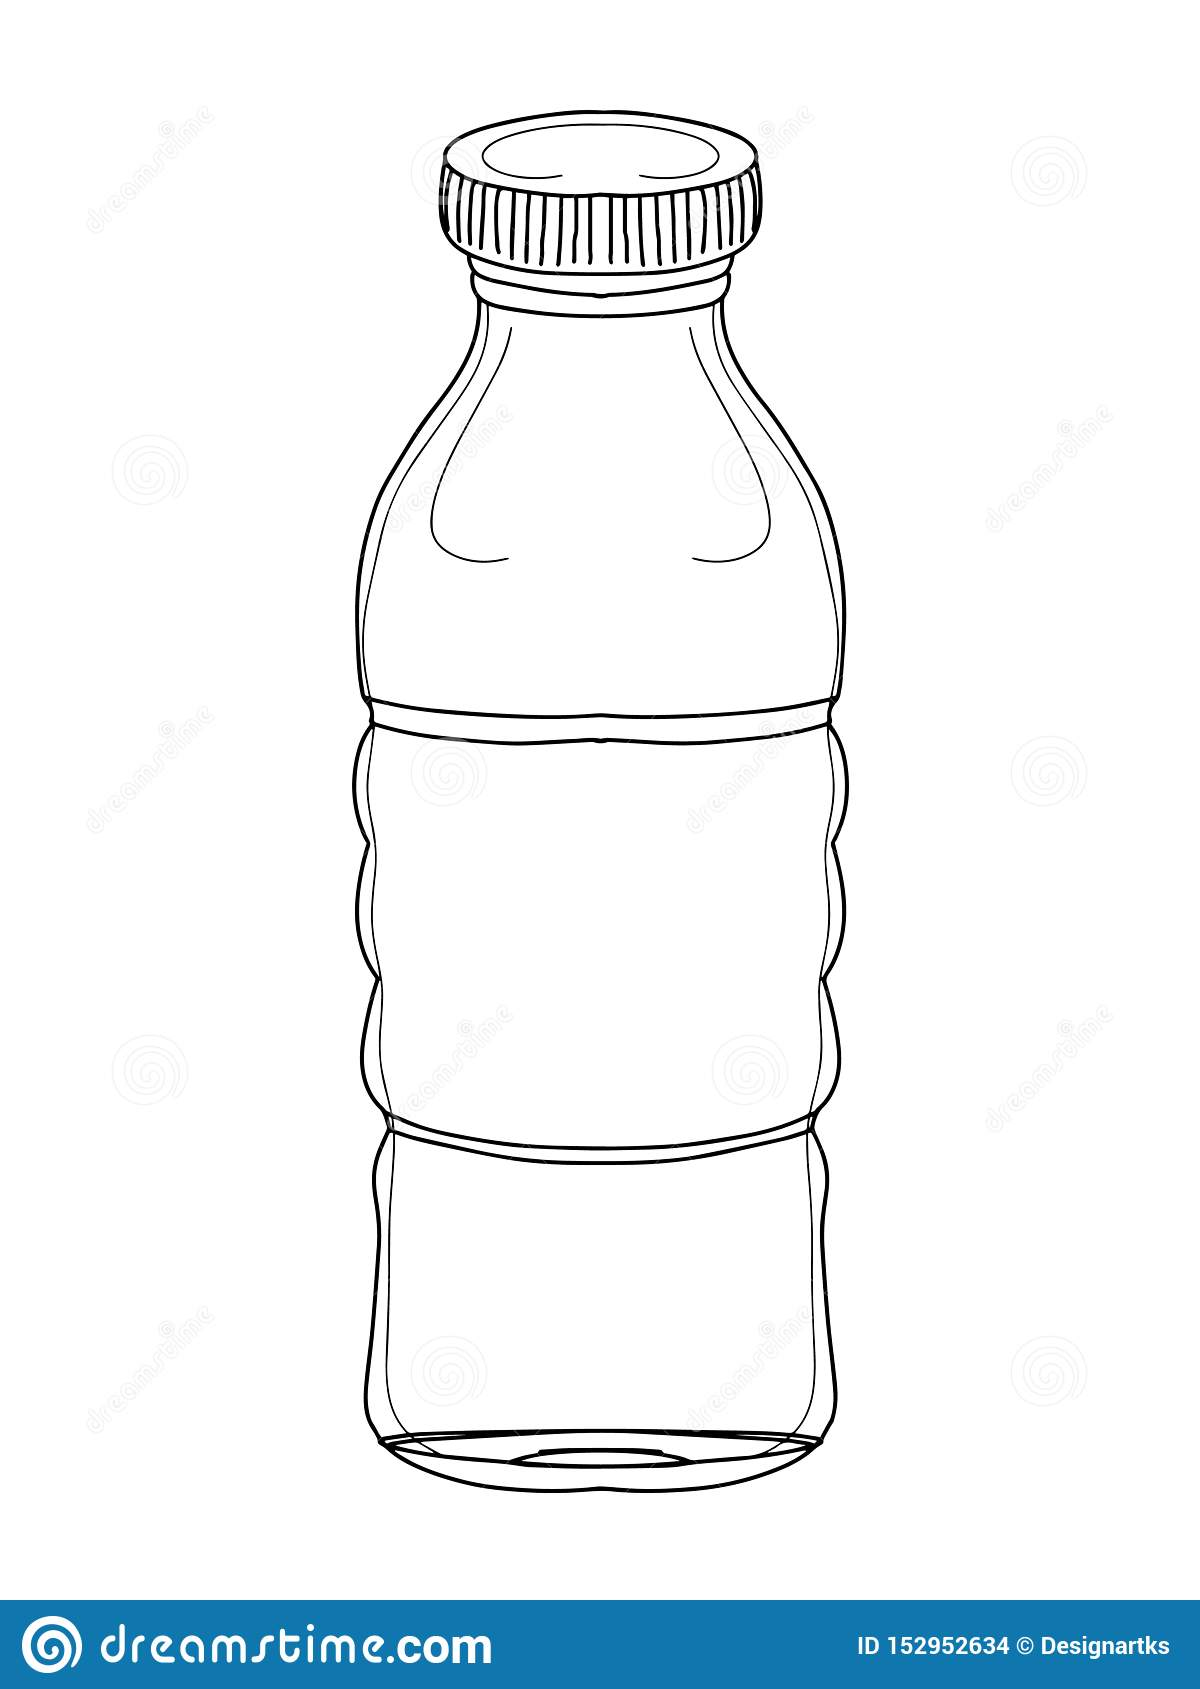 Bottle Water Cartoon Illustration Drawing And Banner Stock Illustration Illustration Of Drawing Healthy 152952634